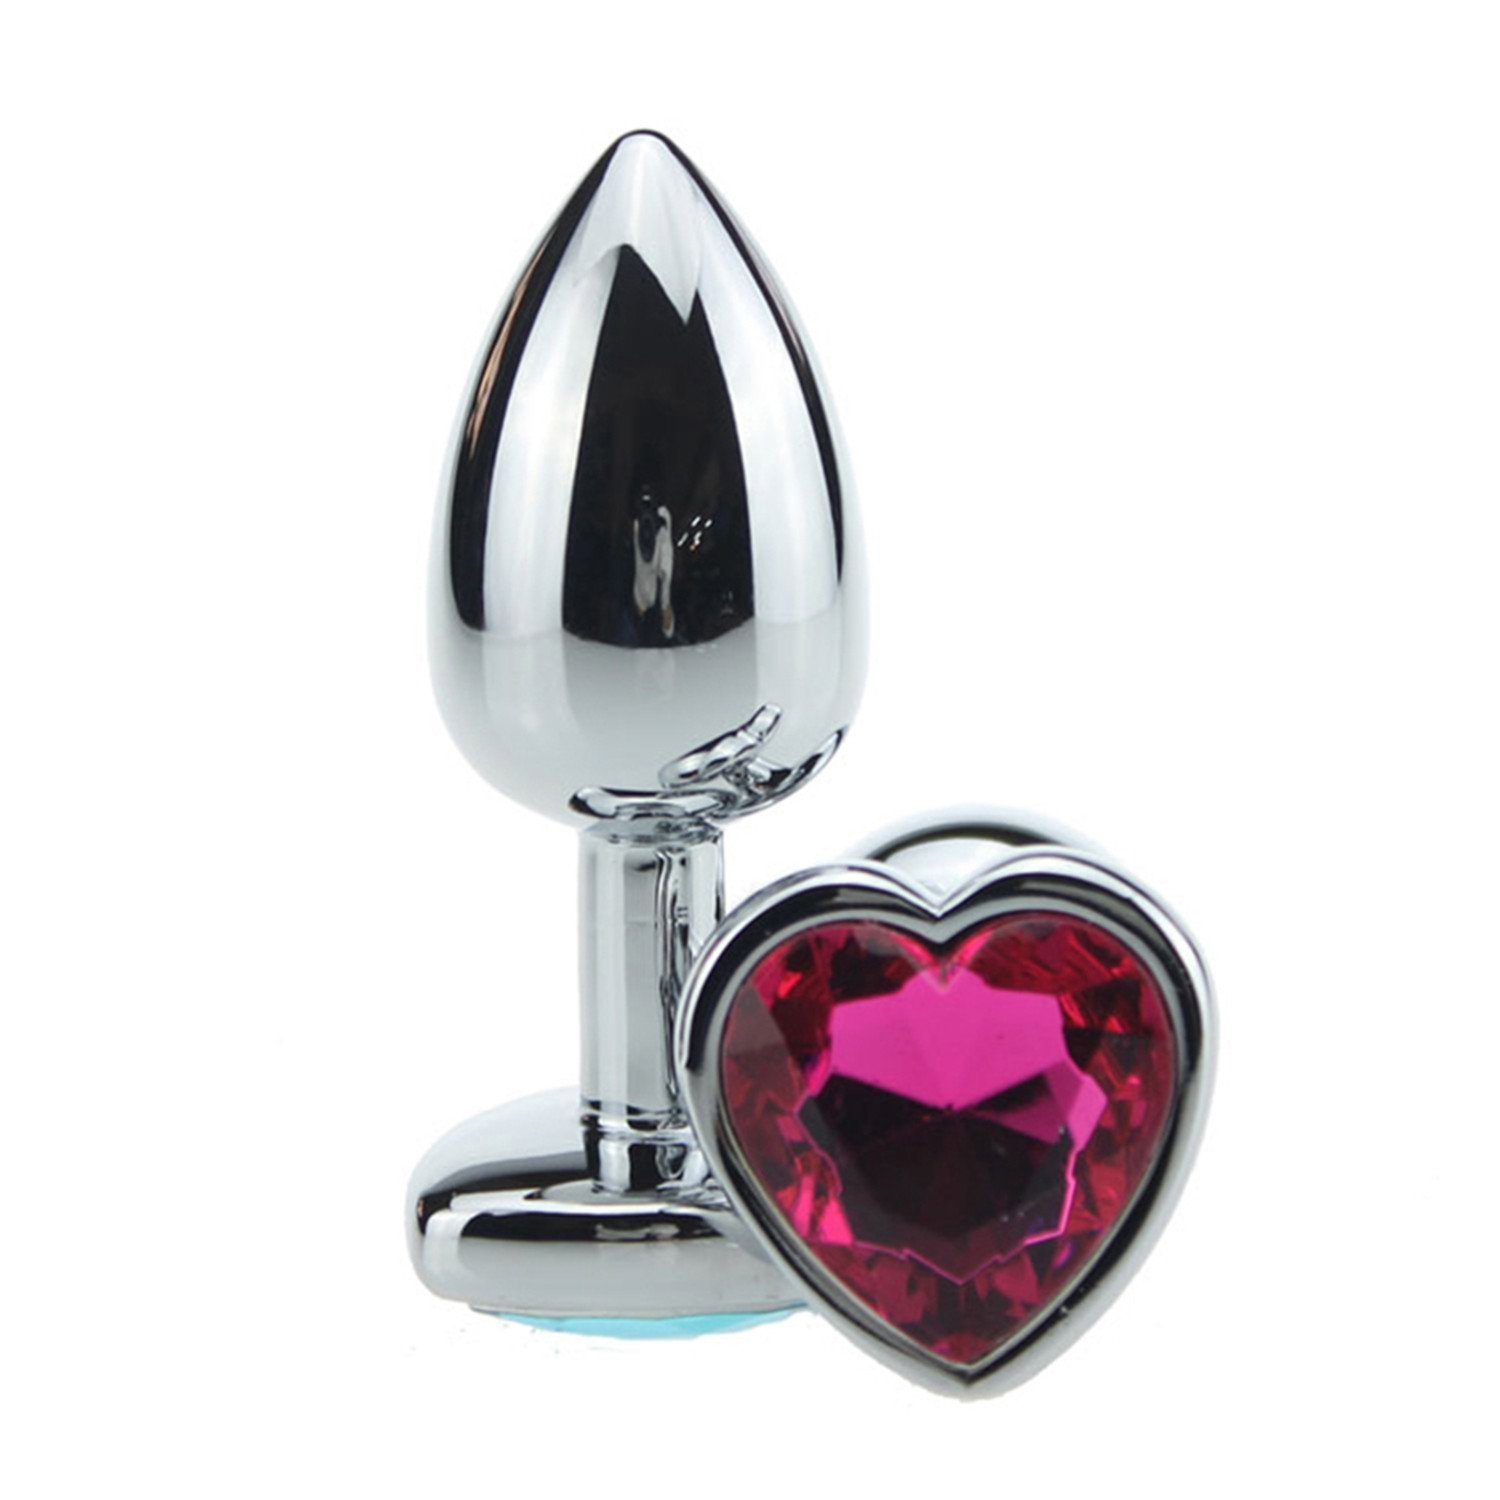 Handheld Small Size Metal Heart Shape Plug Anal 75 28Mm BǘttPlug Erotic Booty Beads Anal Jewelry adǜlt Sěx Tǒy for Woman Men Sěx Product